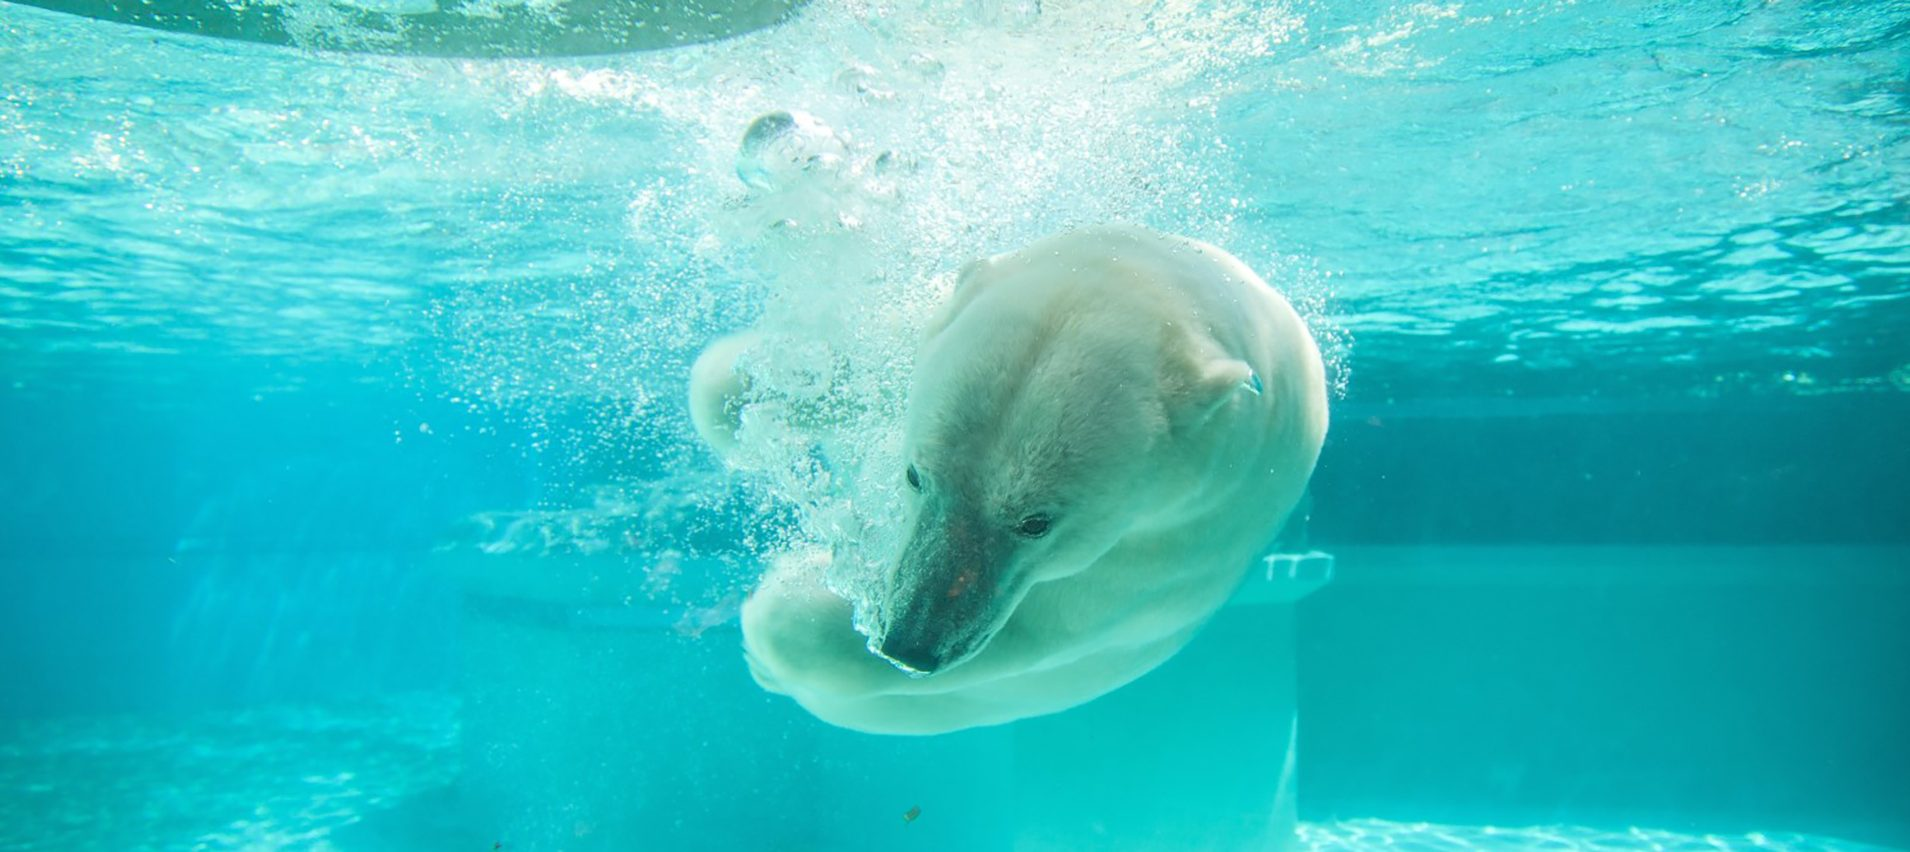 Access and ticketing for the zoo/aquarium sector